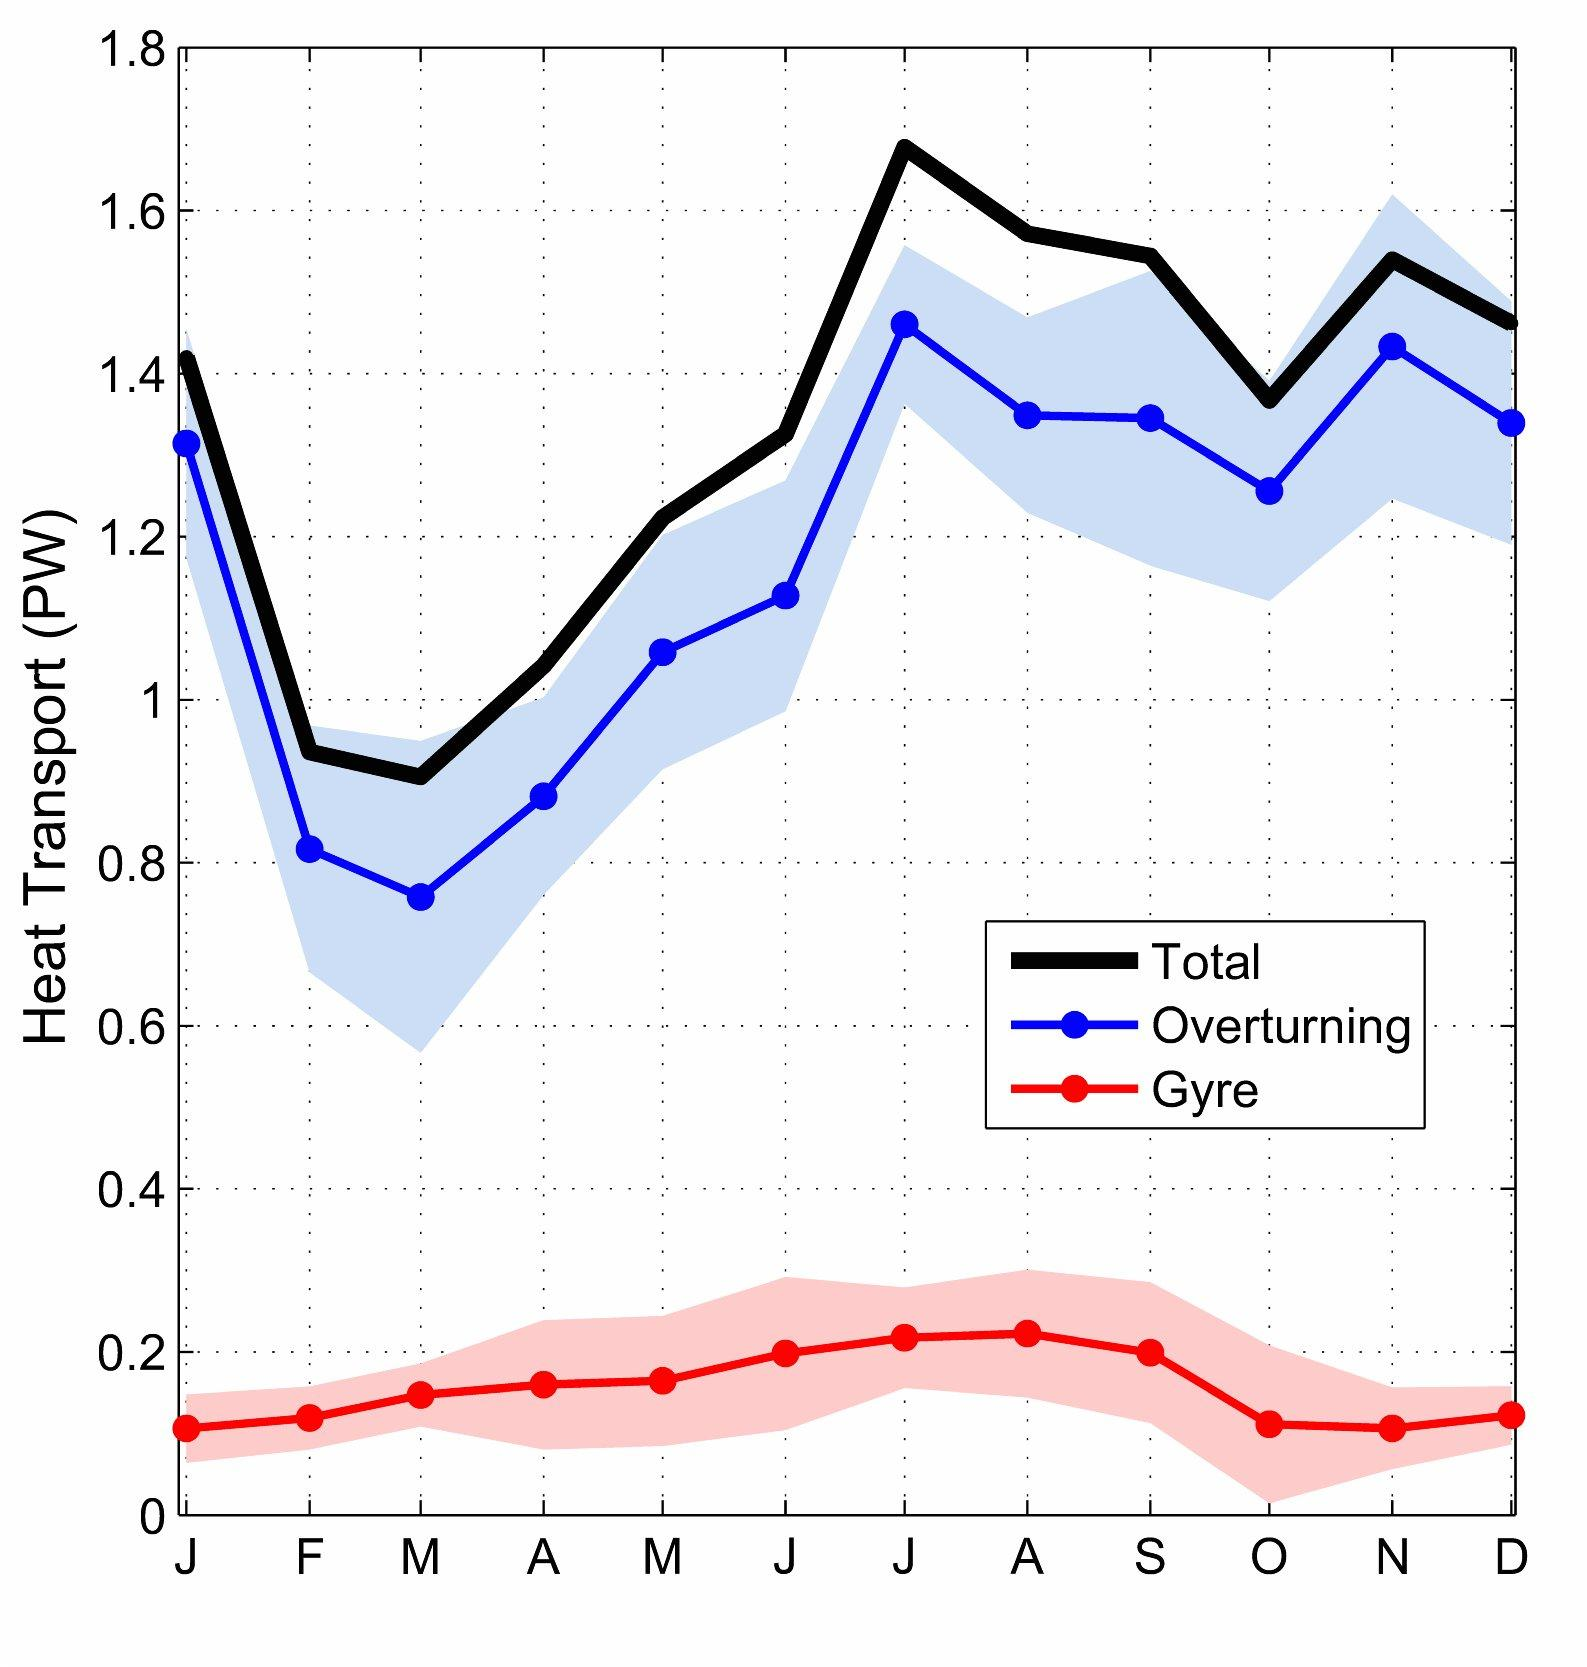 Monthly climatology of the overturning heat transpor